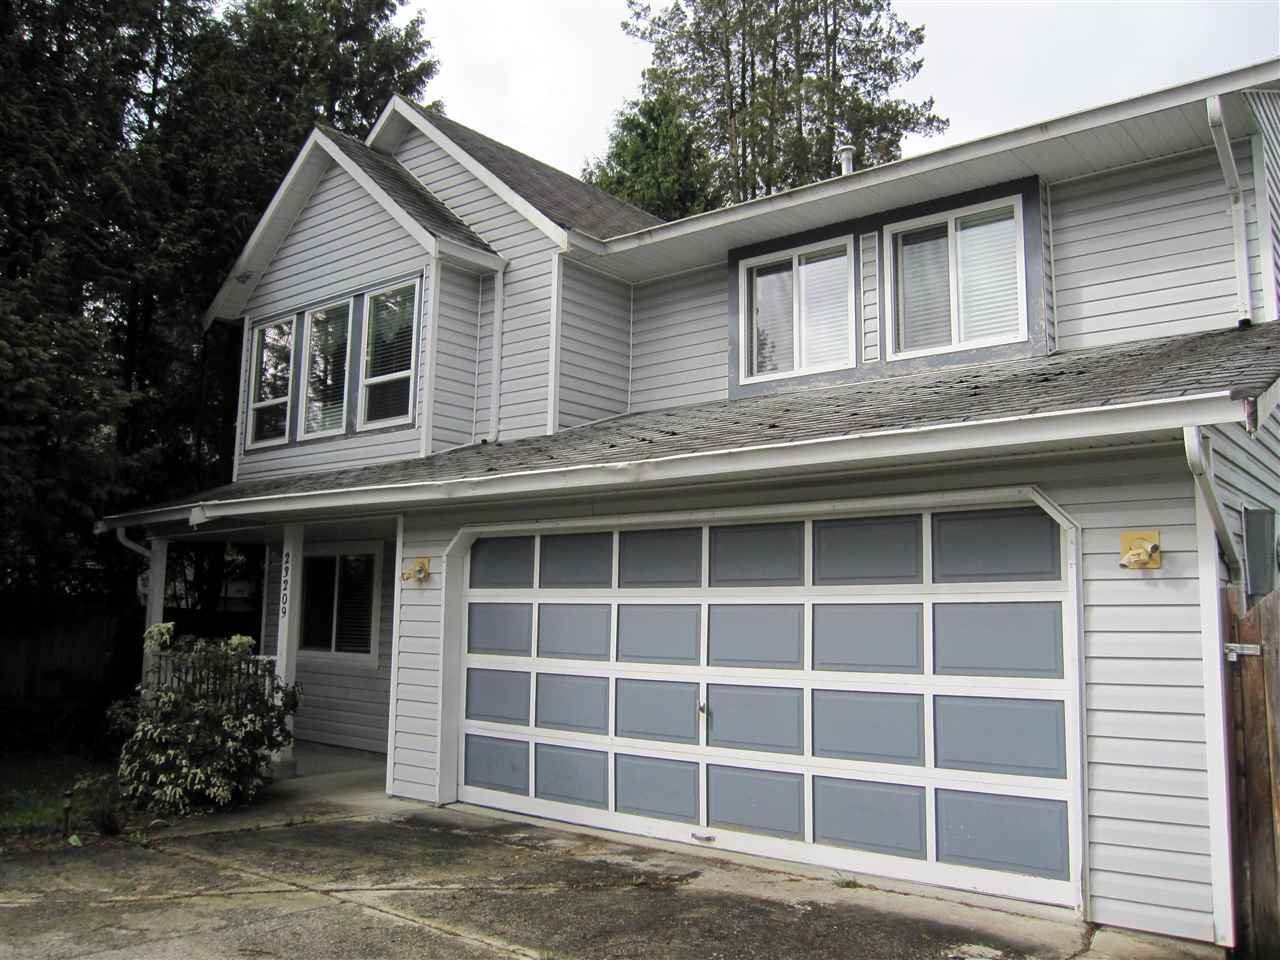 Main Photo: 23209 123 Avenue in Maple Ridge: East Central House for sale : MLS®# R2049127